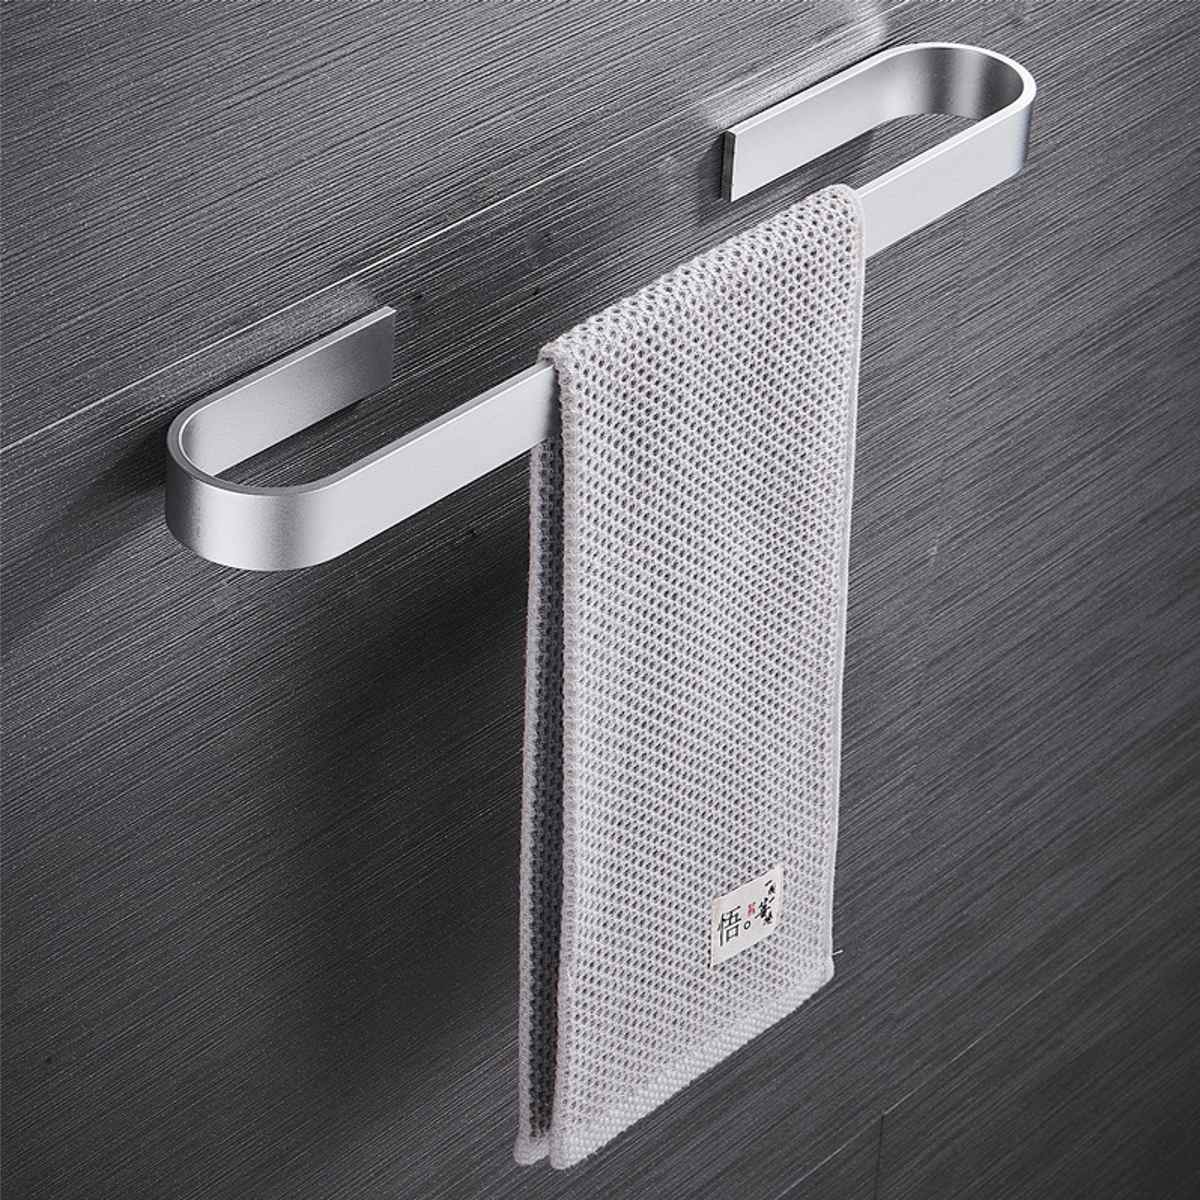 Space Aluminum Alloy Towel Holder Wall Mounted Hanger Organizer Waterproof Bathroom Kitchen Storage Rack Shelf Accessories